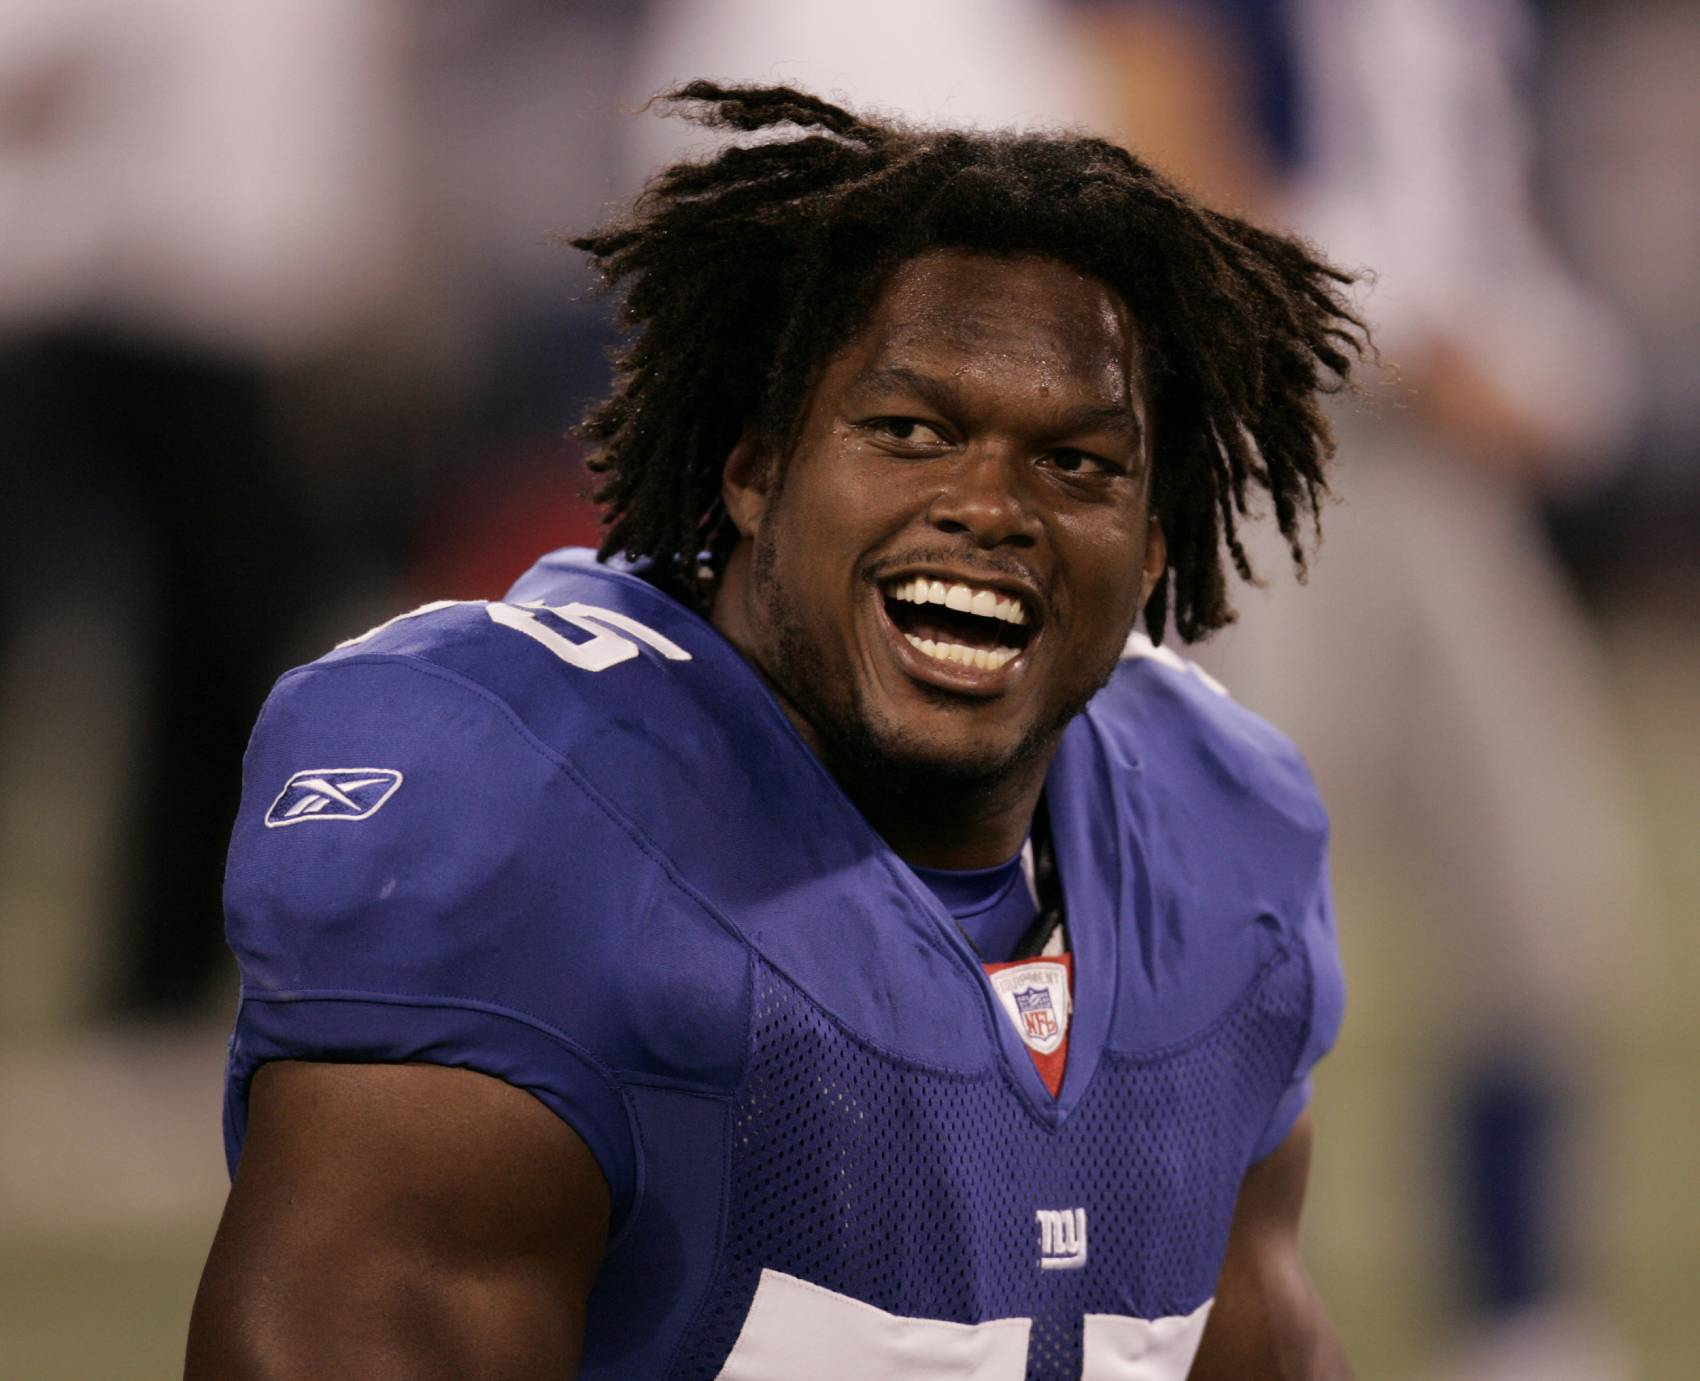 LaVar Arrington signed with the New York Giants before the 2006 season.